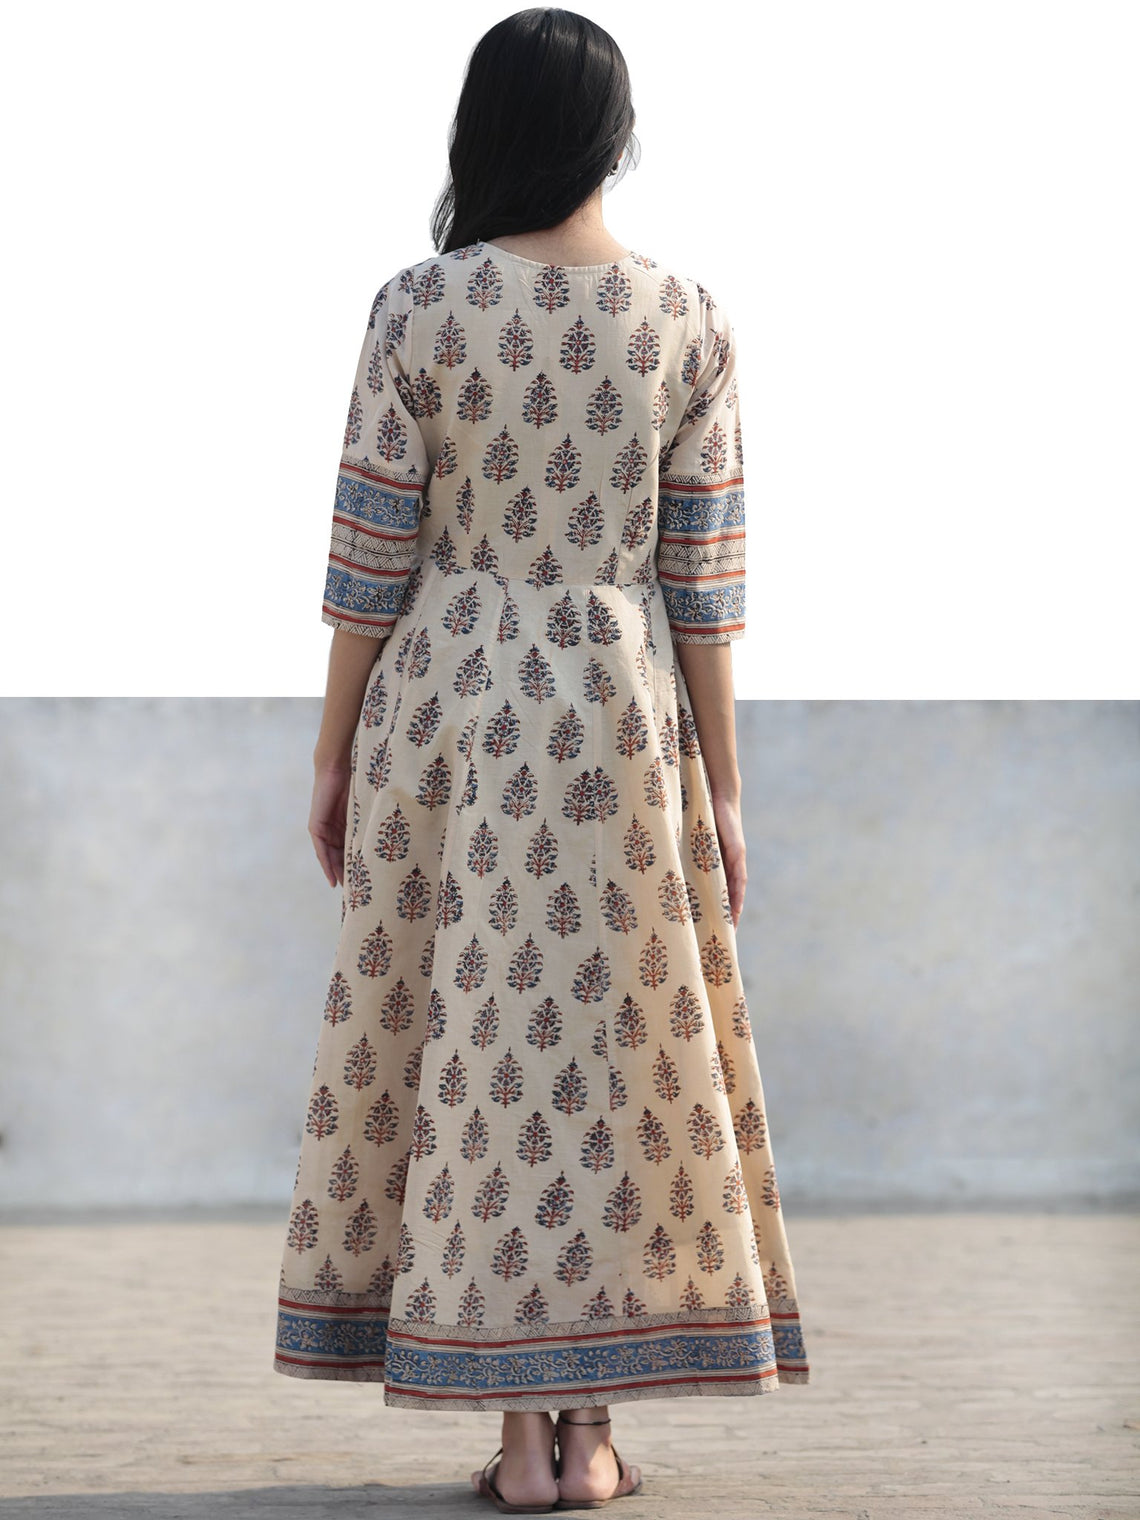 Beige Blue Maroon Black Hand Block Printed Long Cotton Dress with Tassels- DS02F004